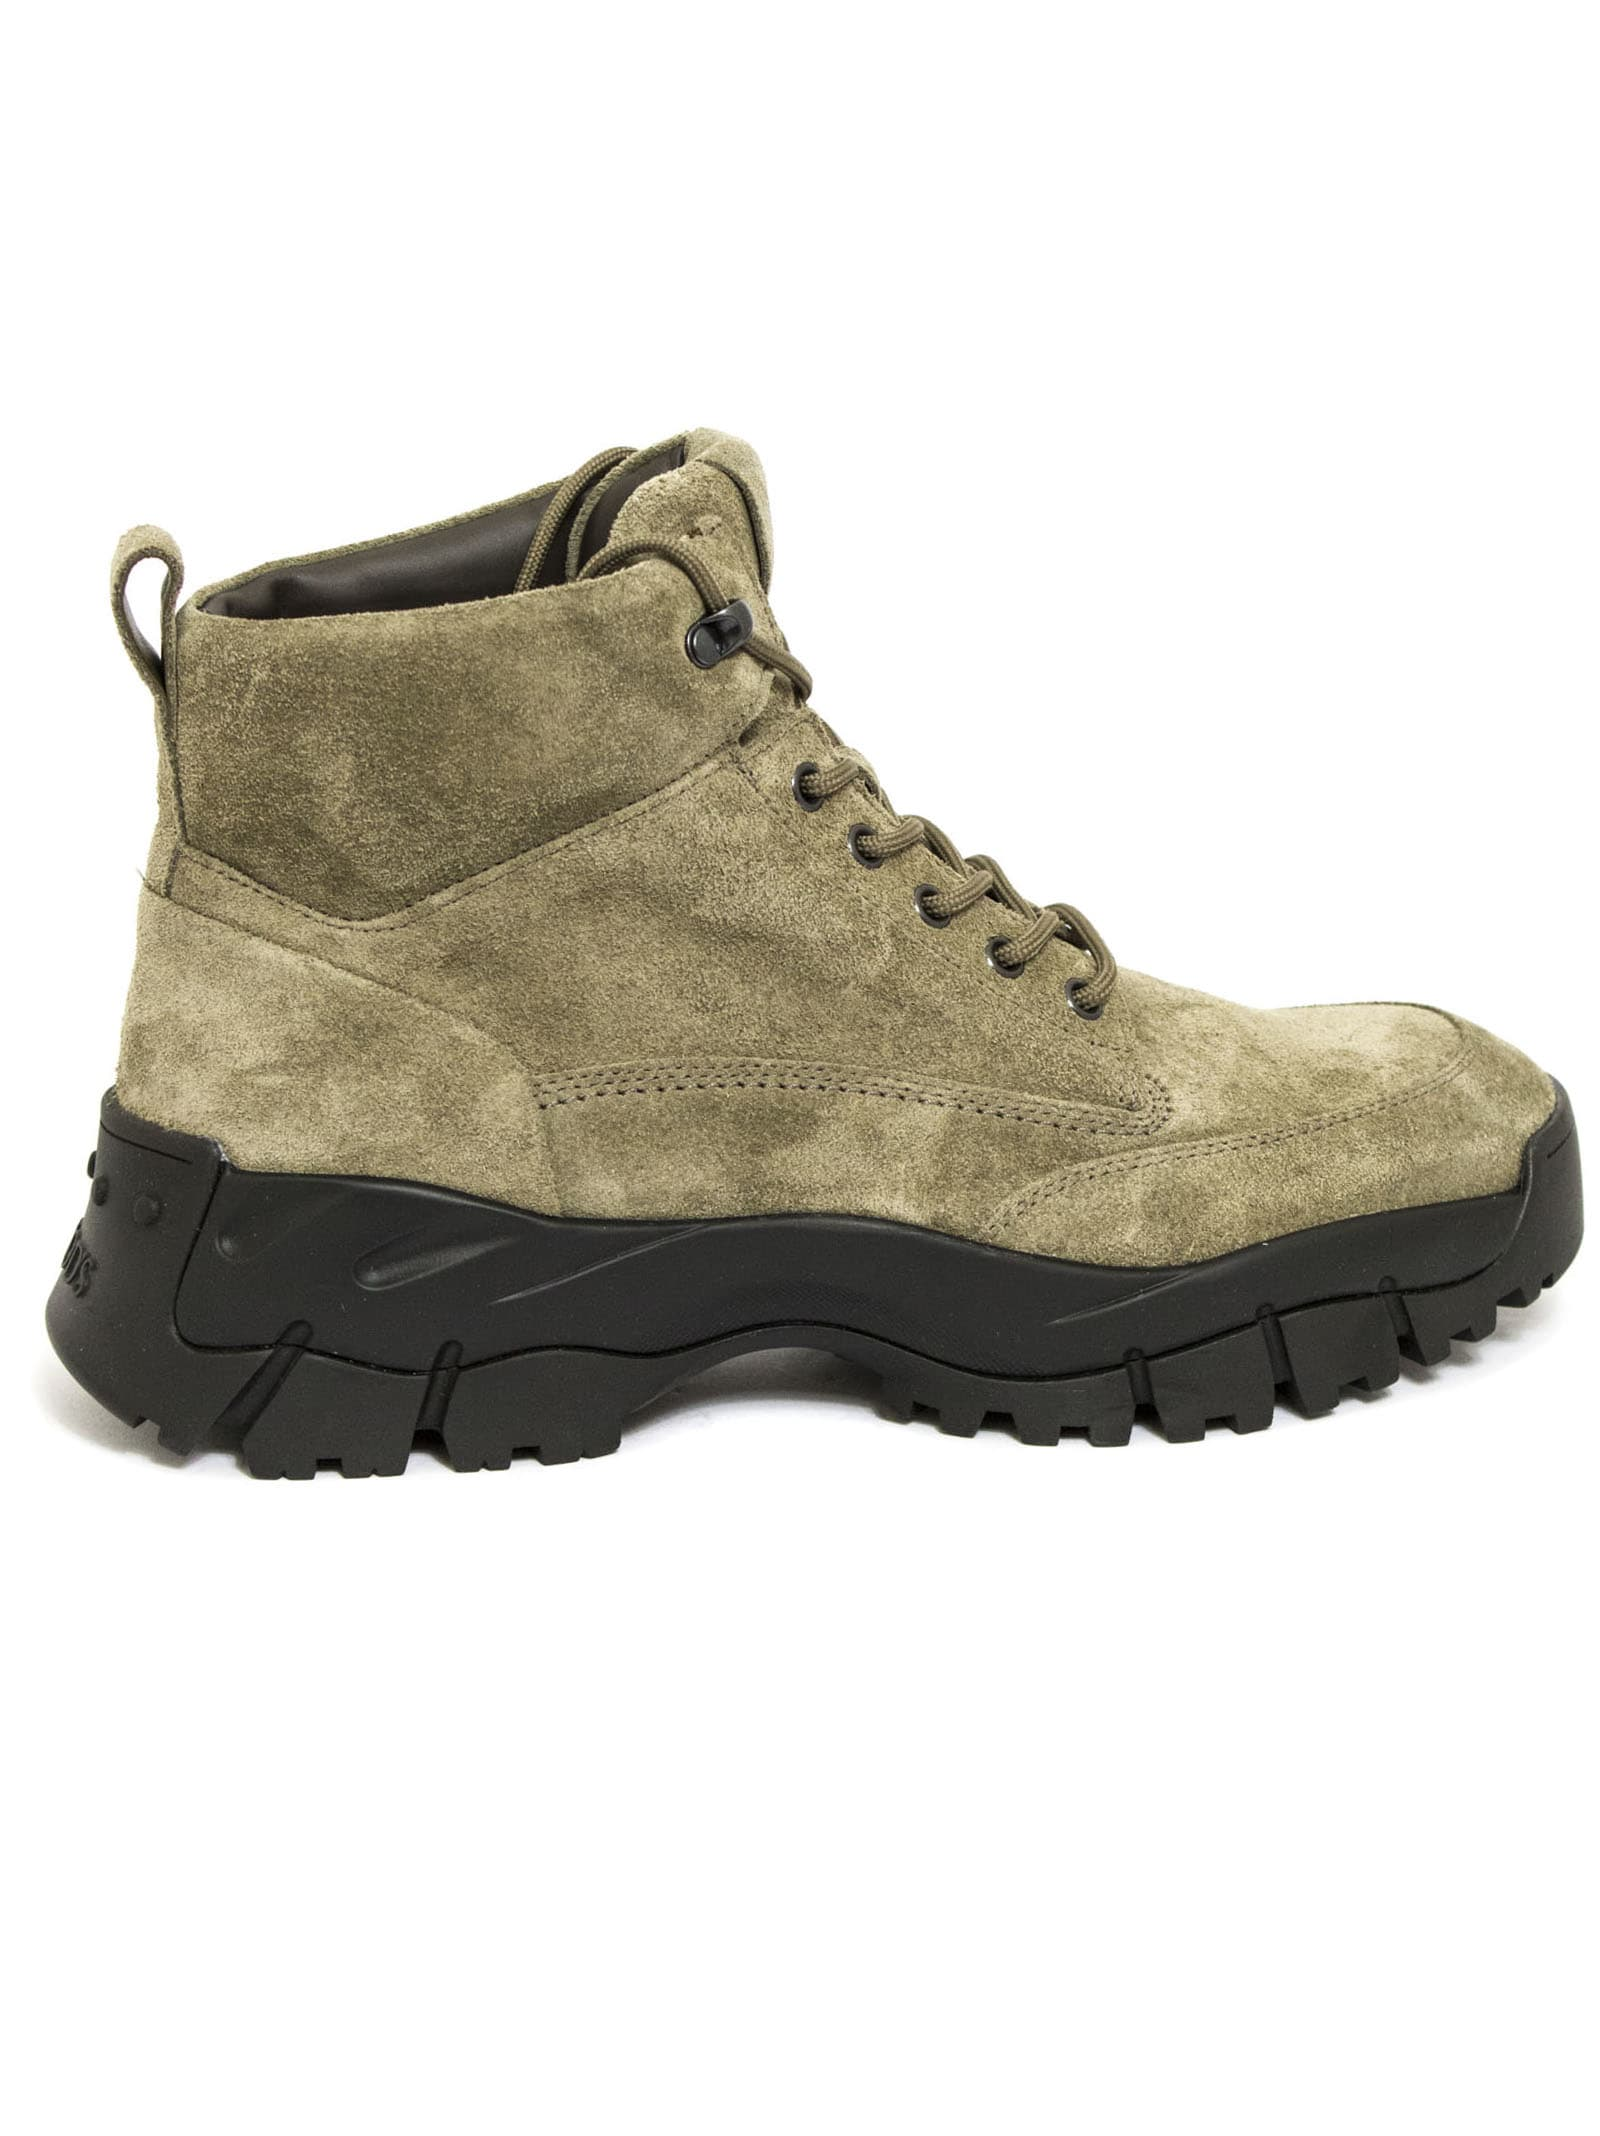 Tods Beige Suede Trekking Style Ankle Boots